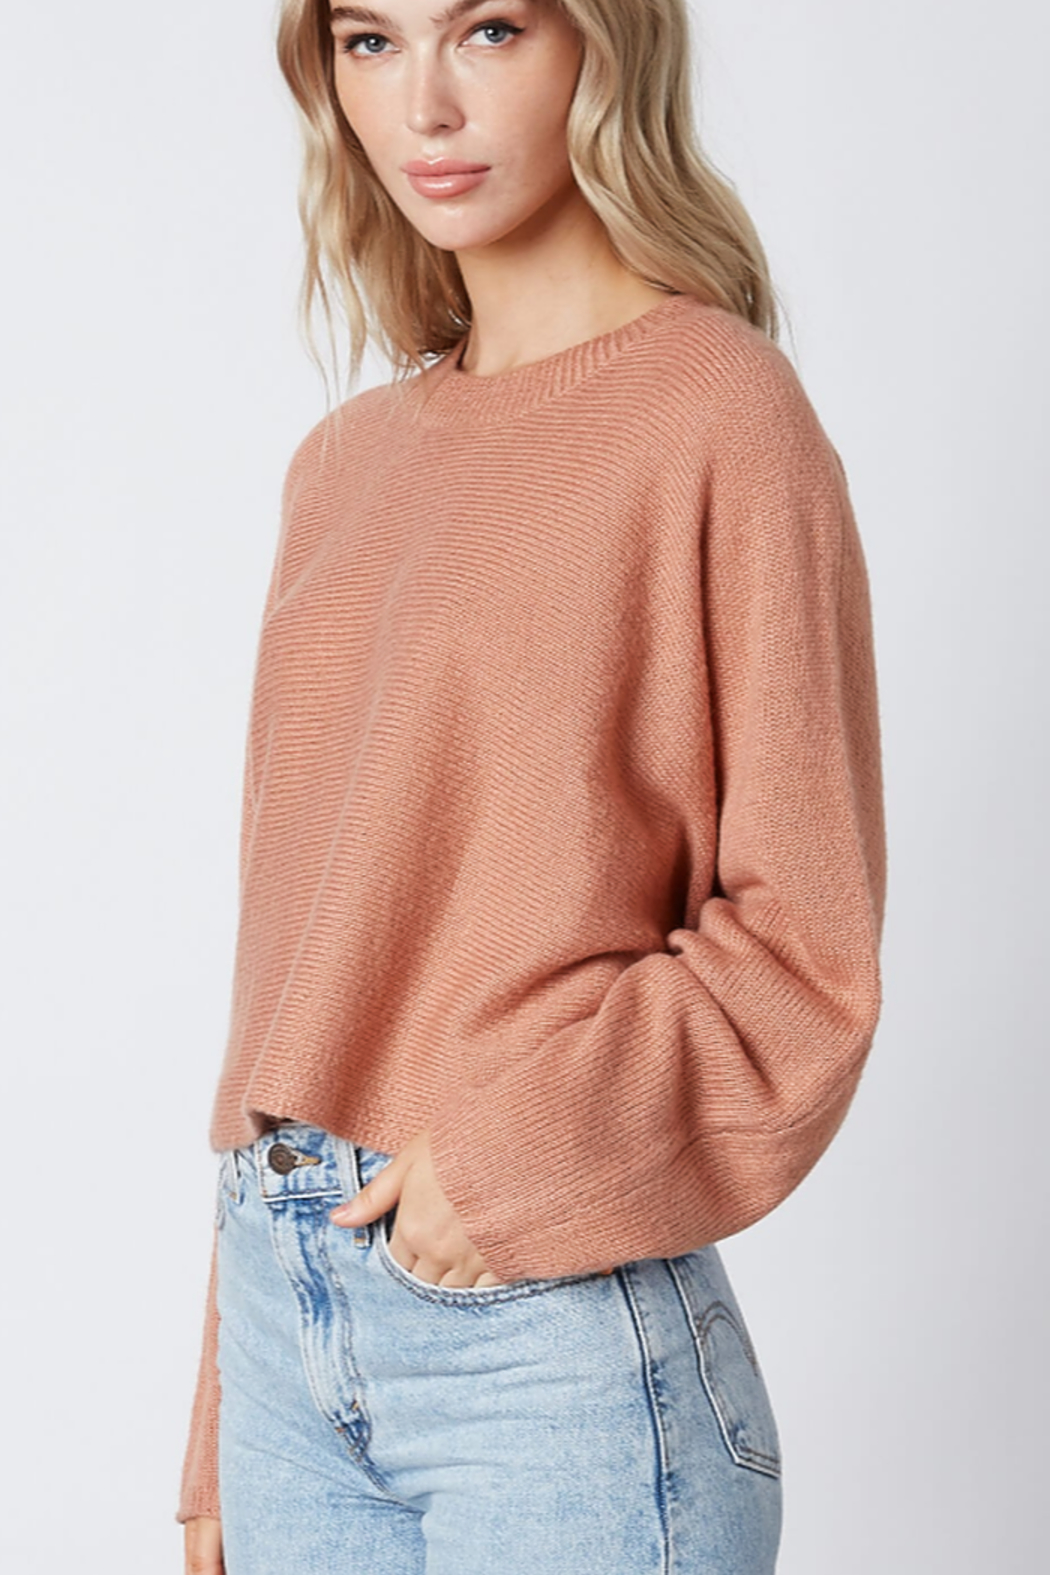 Cotton Candy  Crew Neck Sweater - Front Full Image